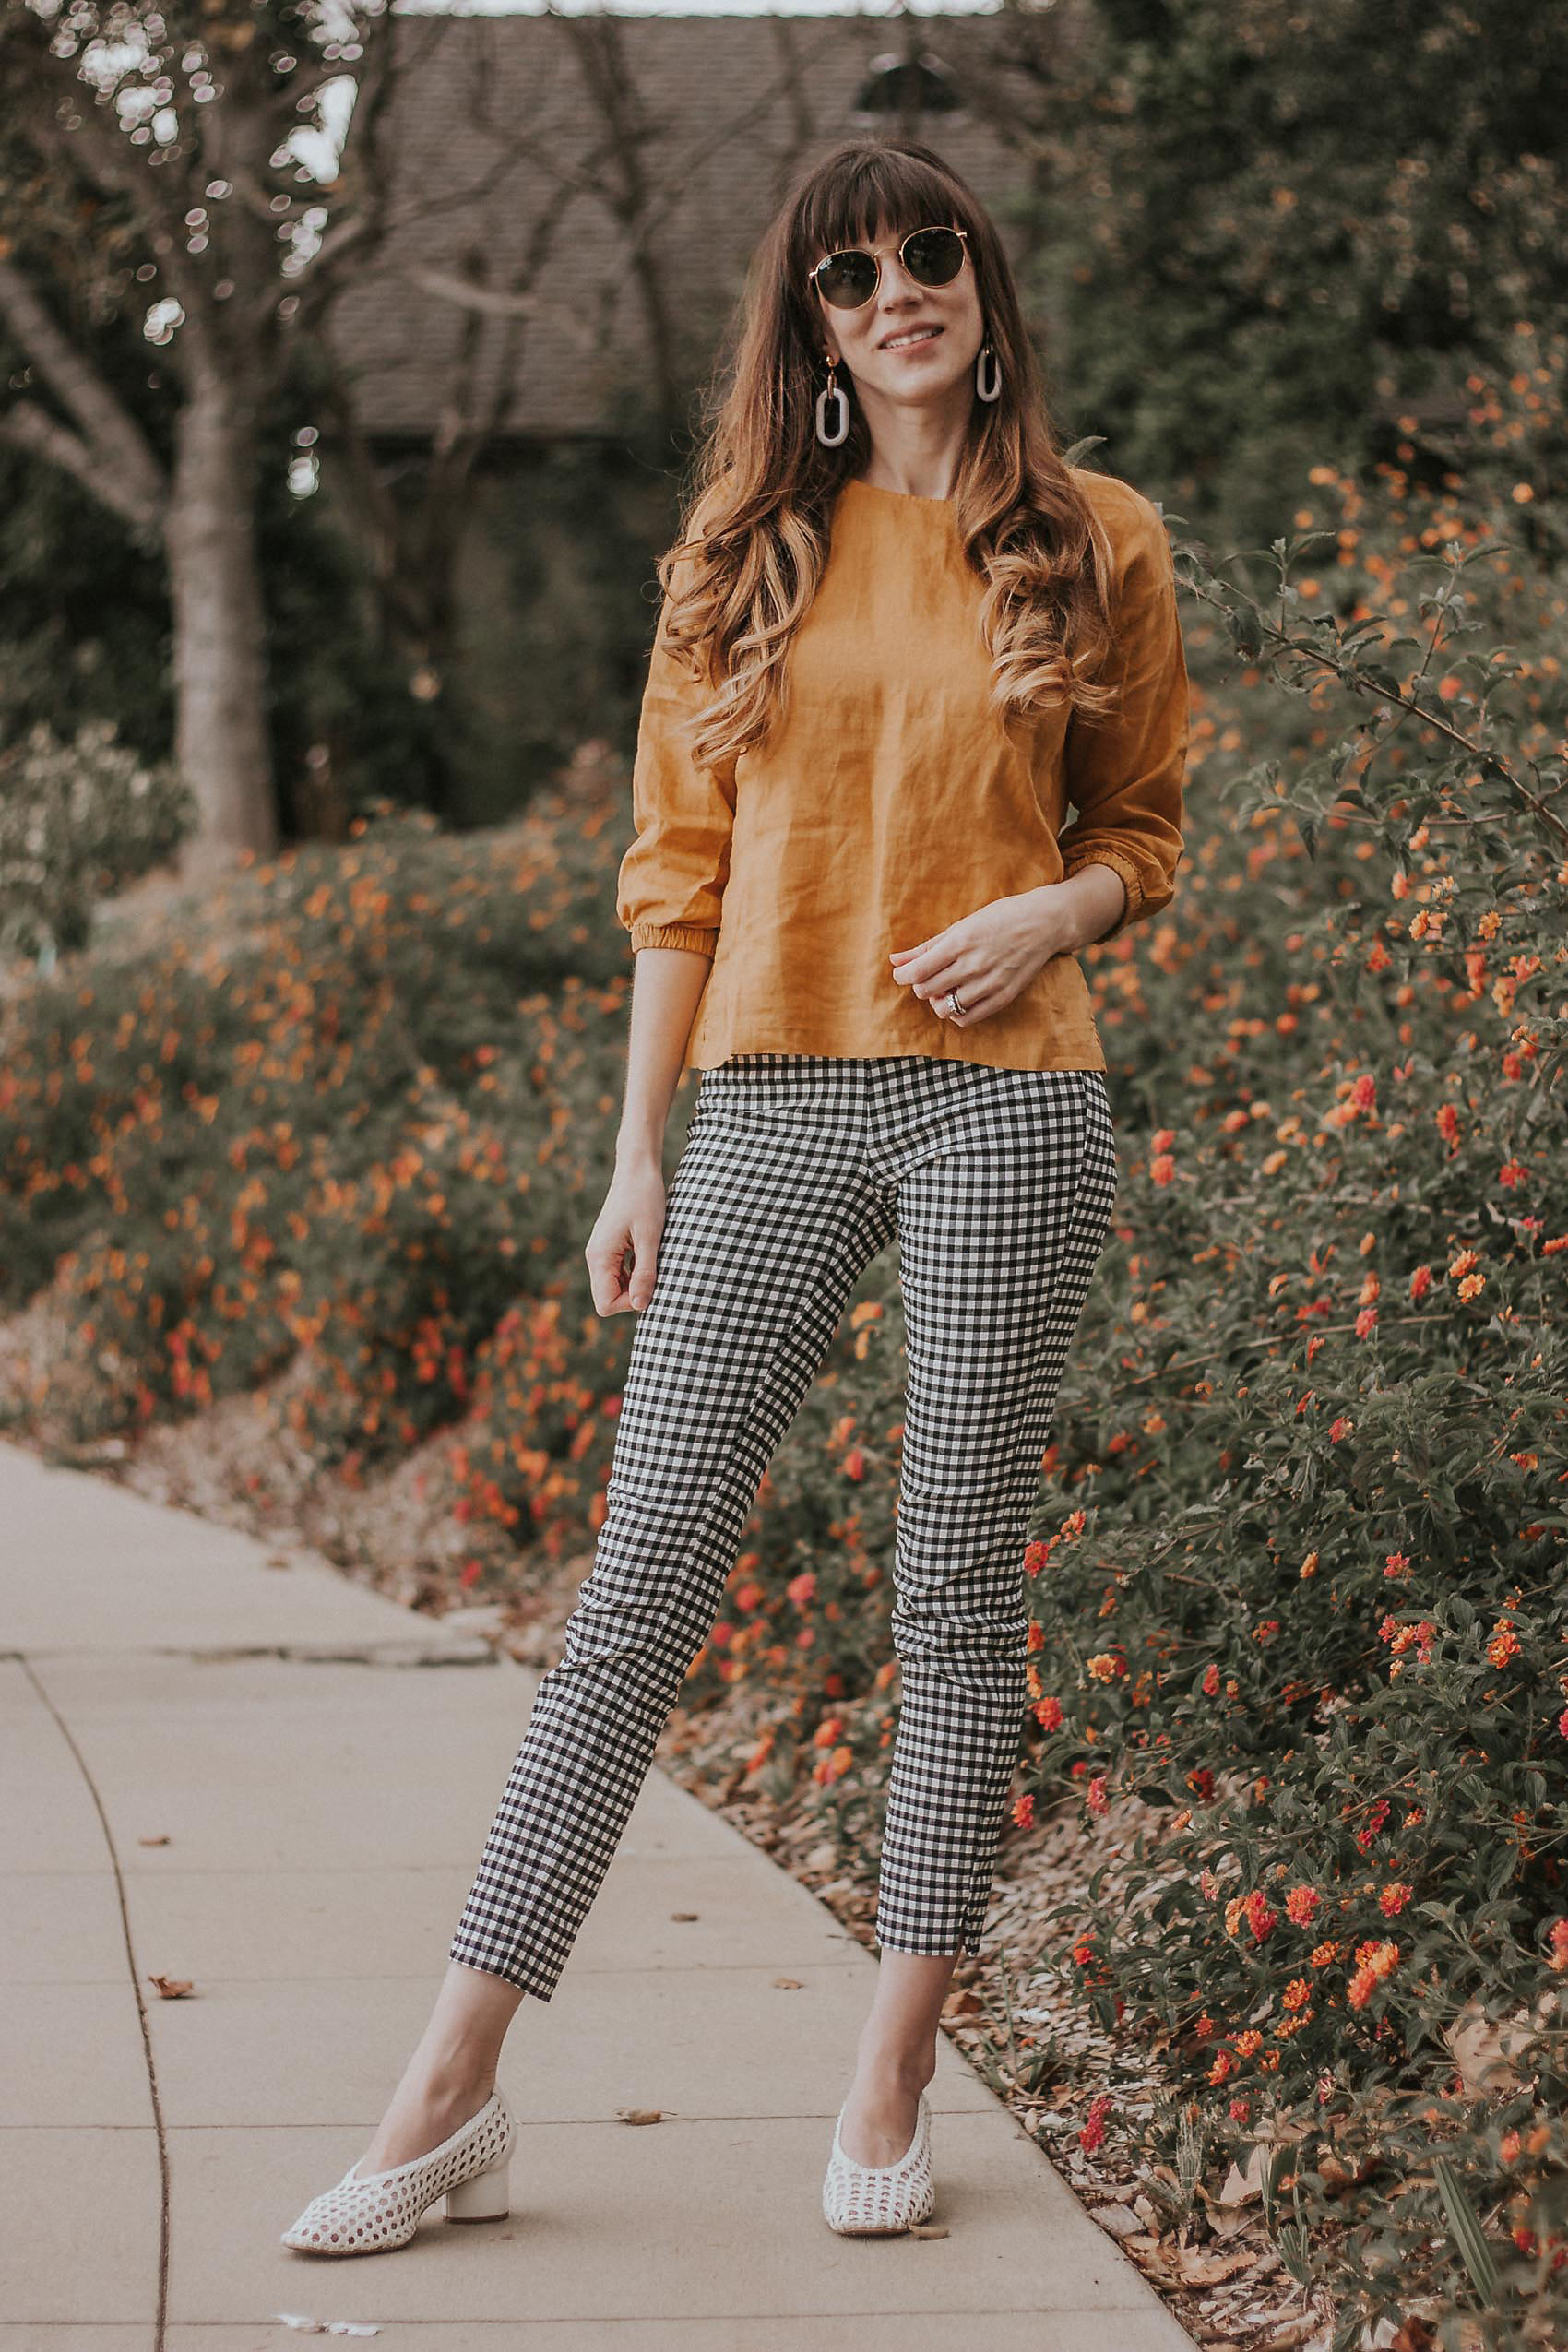 Los Angeles Style Blogger wearing Colorlinen linen top with gingham pants